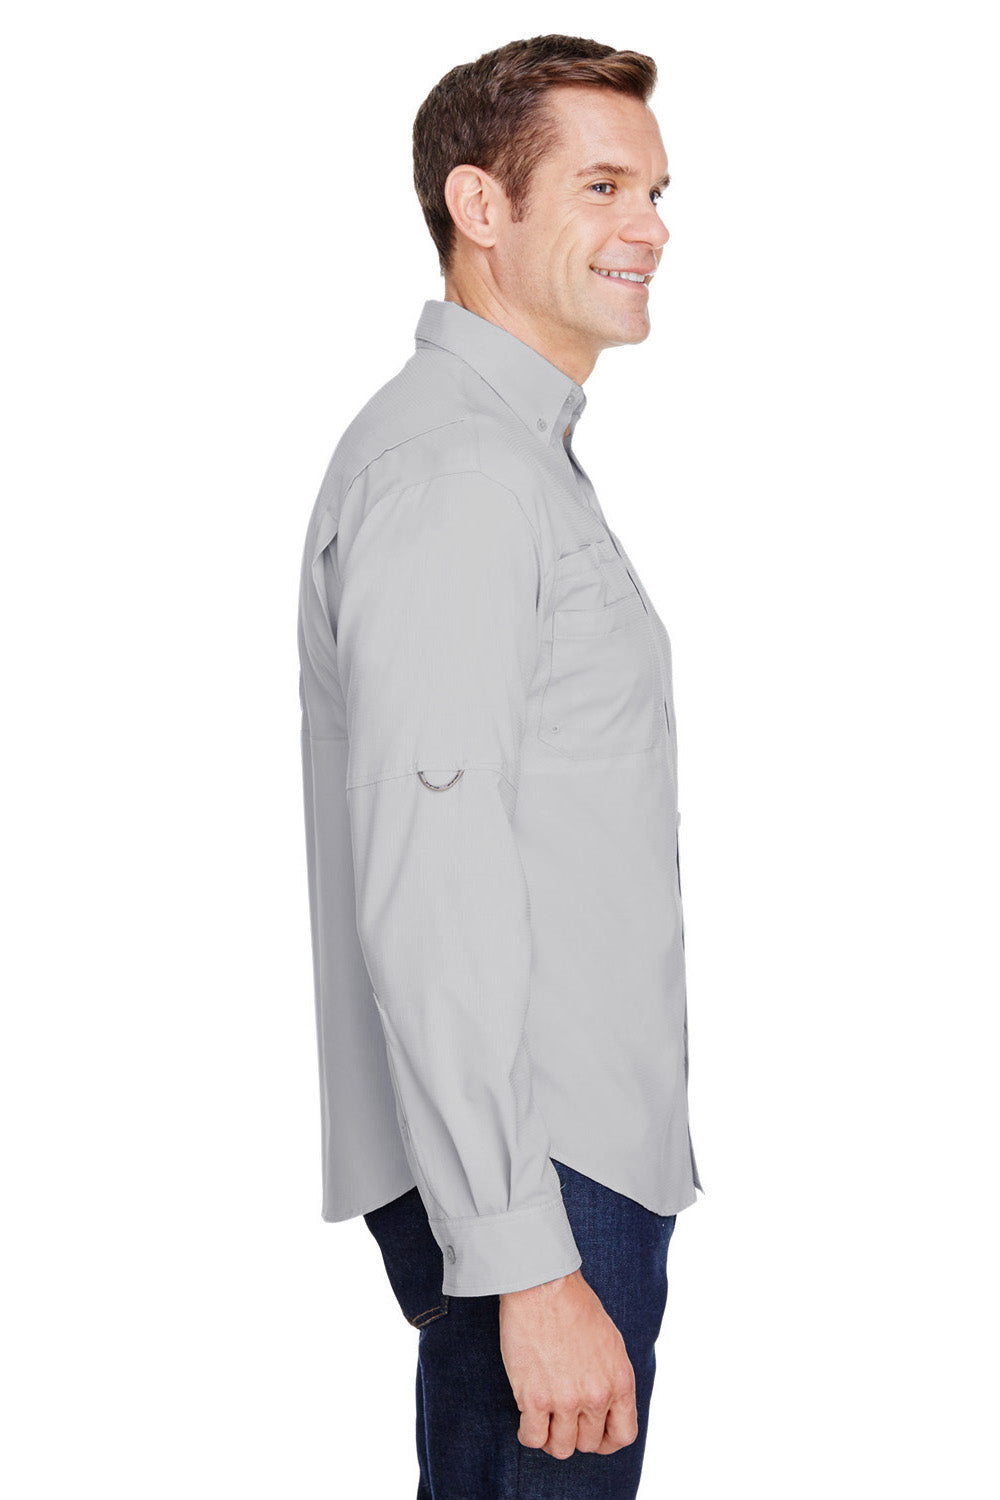 Columbia 7253 Tamiami II Moisture Wicking Long Sleeve Button Down Shirt w/ Double Pockets Cool Grey Side